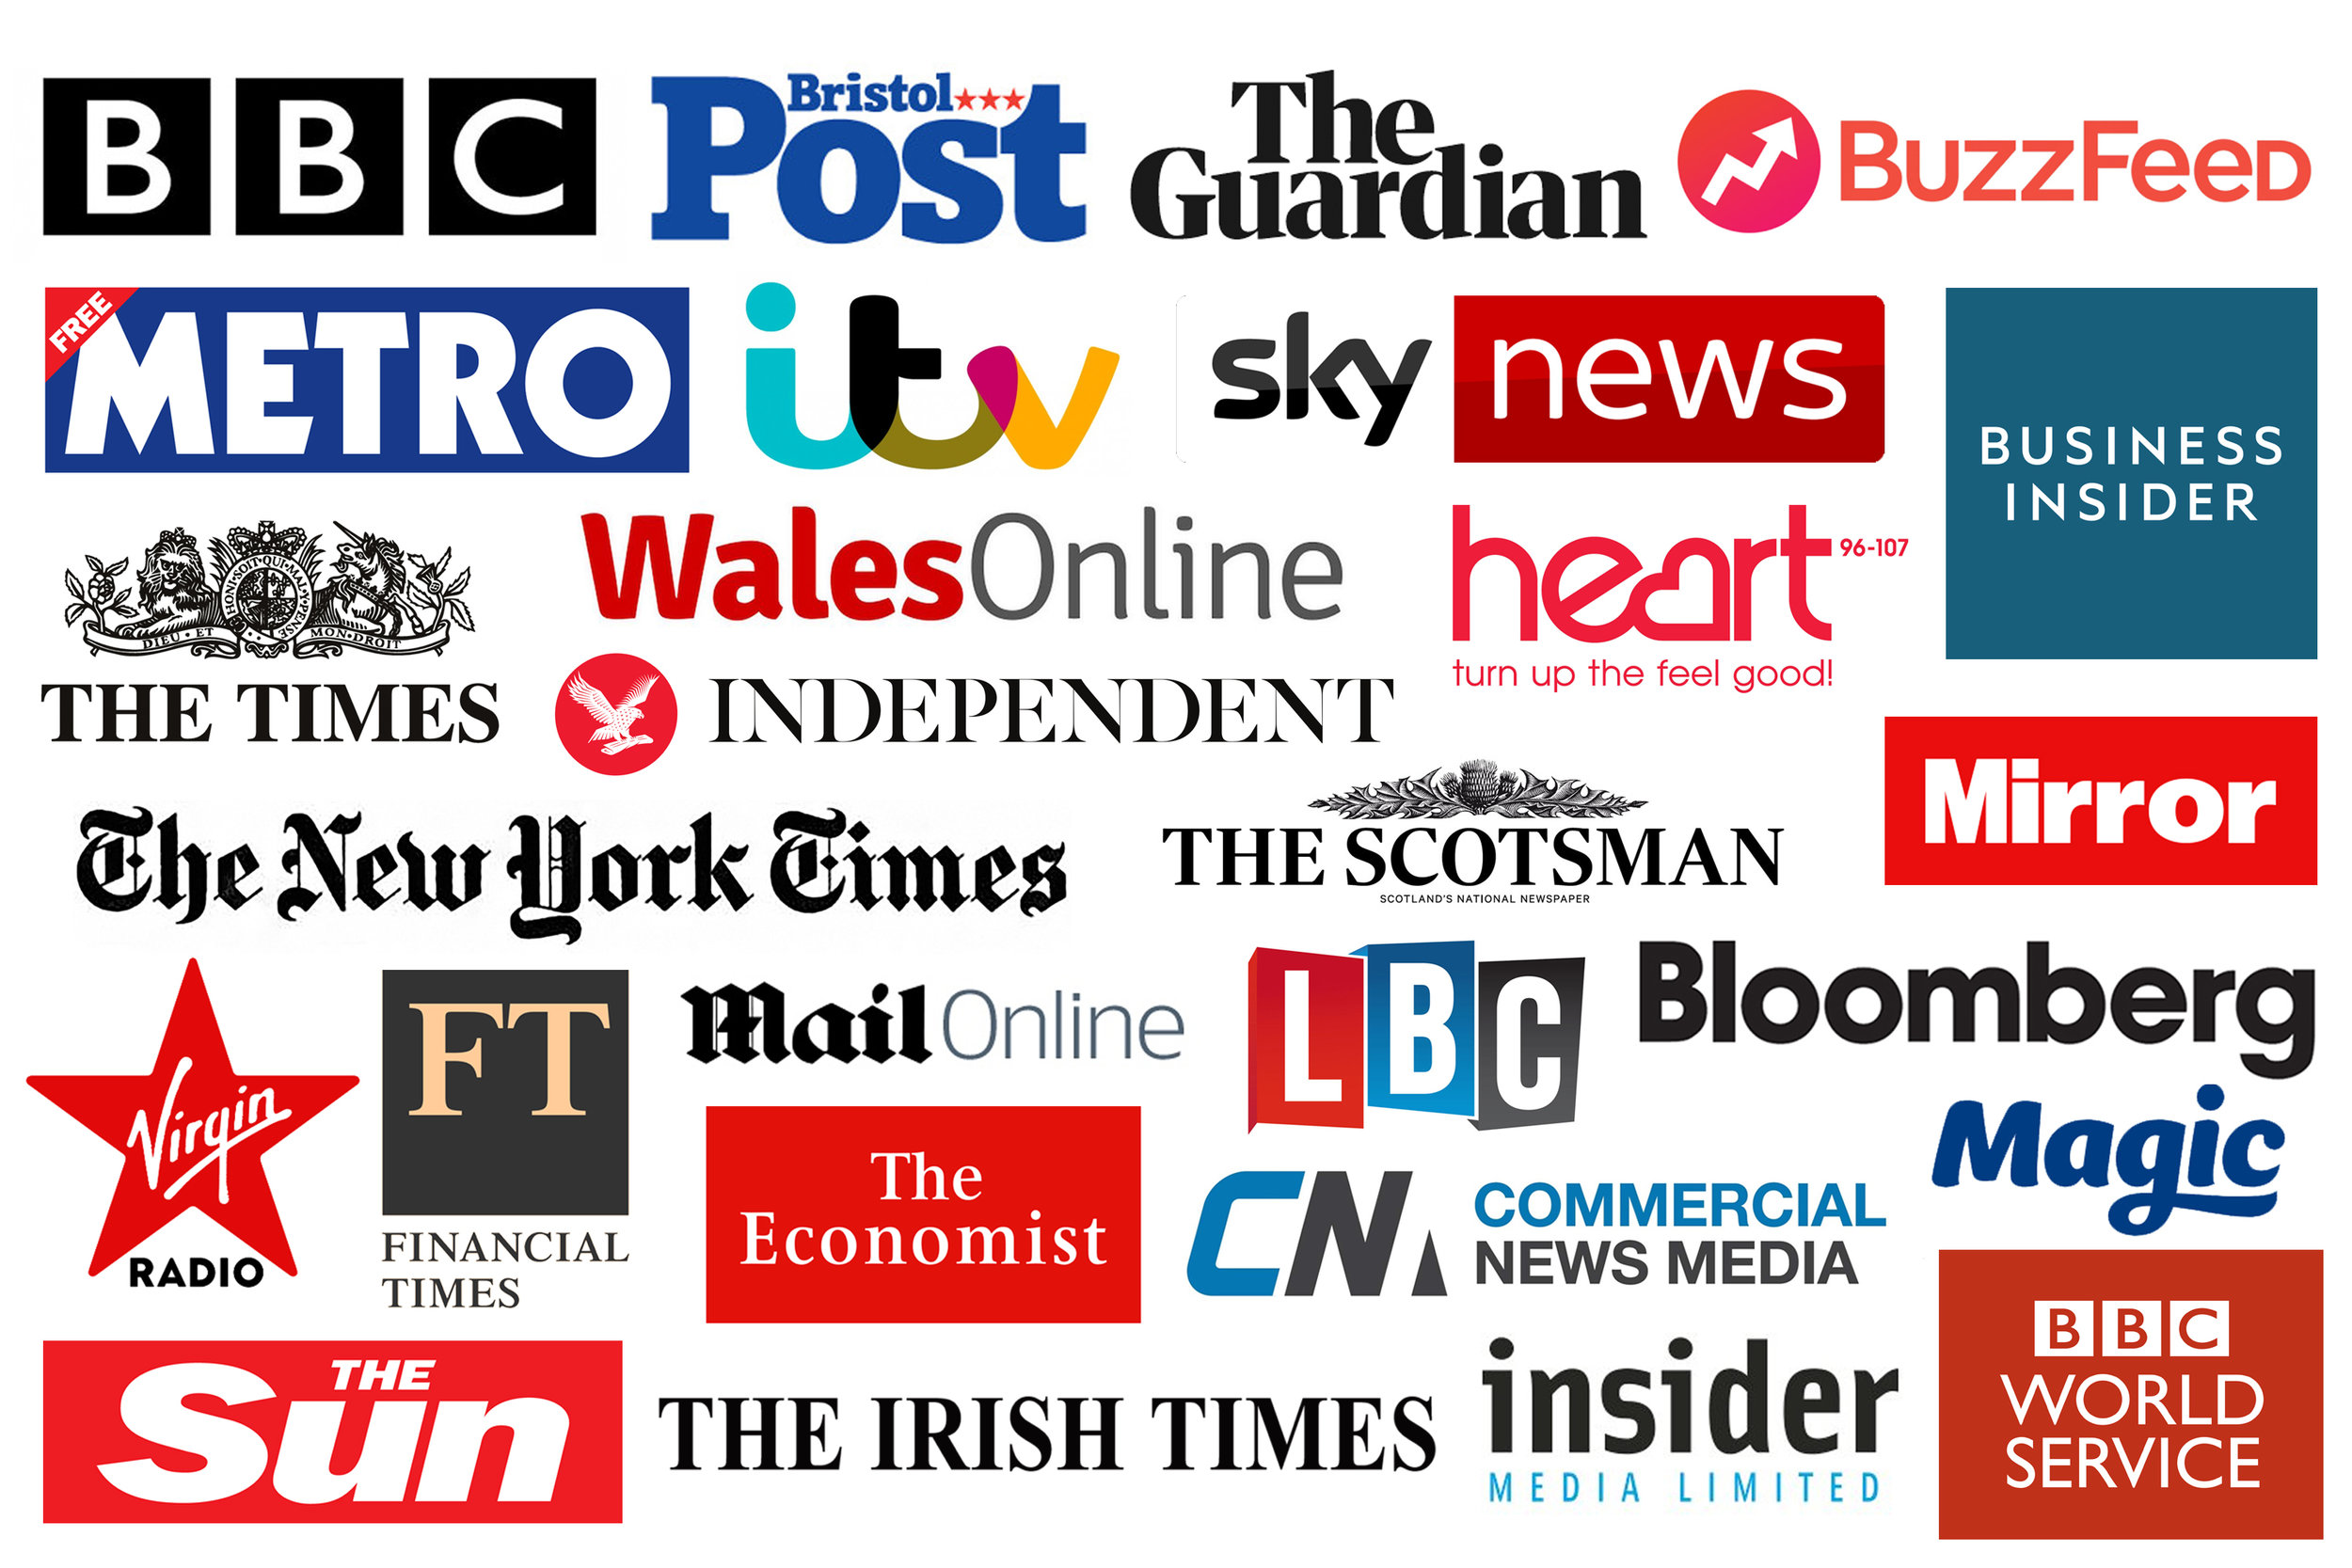 WE HANDLE THE MEDIA - Whether you want to be in local, regional, trade or international media we will create the stories that will get you noticed and encourage journalists, writers, broadcasters and bloggers to talk about you.